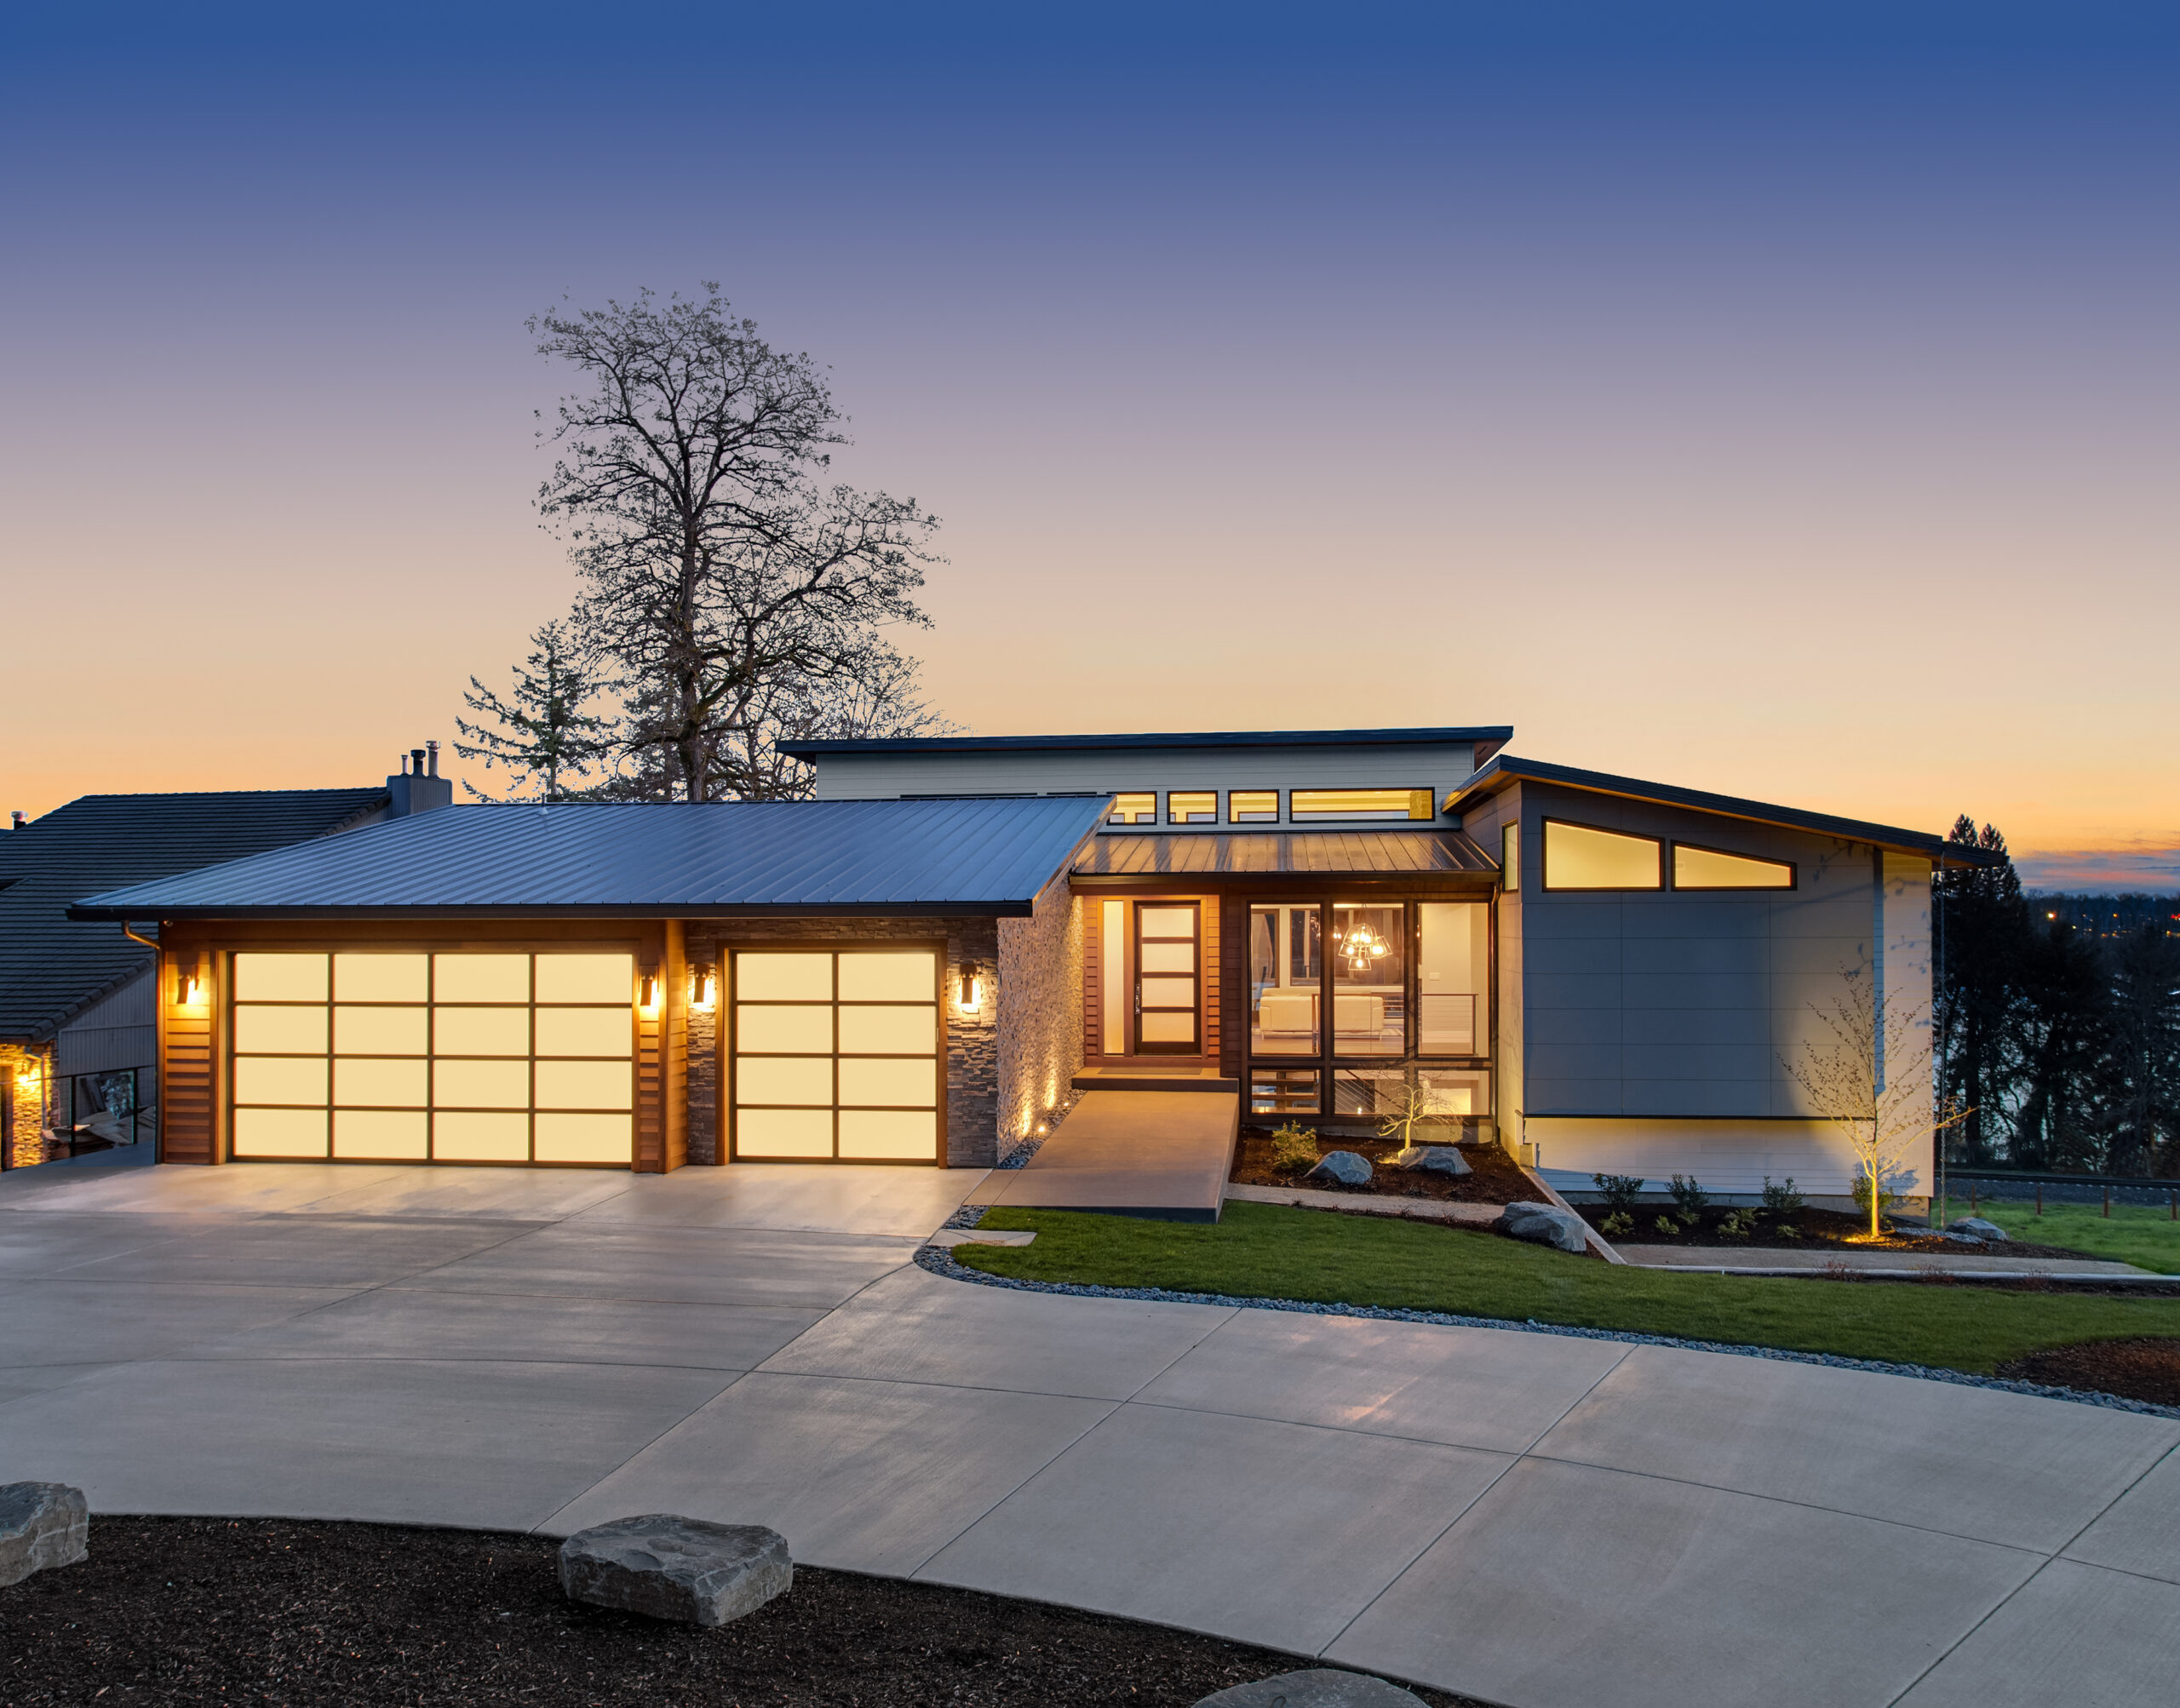 Beautiful modern style luxury home exterior at sunset with glowing interior lights. Features three car garage with translucent panels, clerestory windows and elegant design.